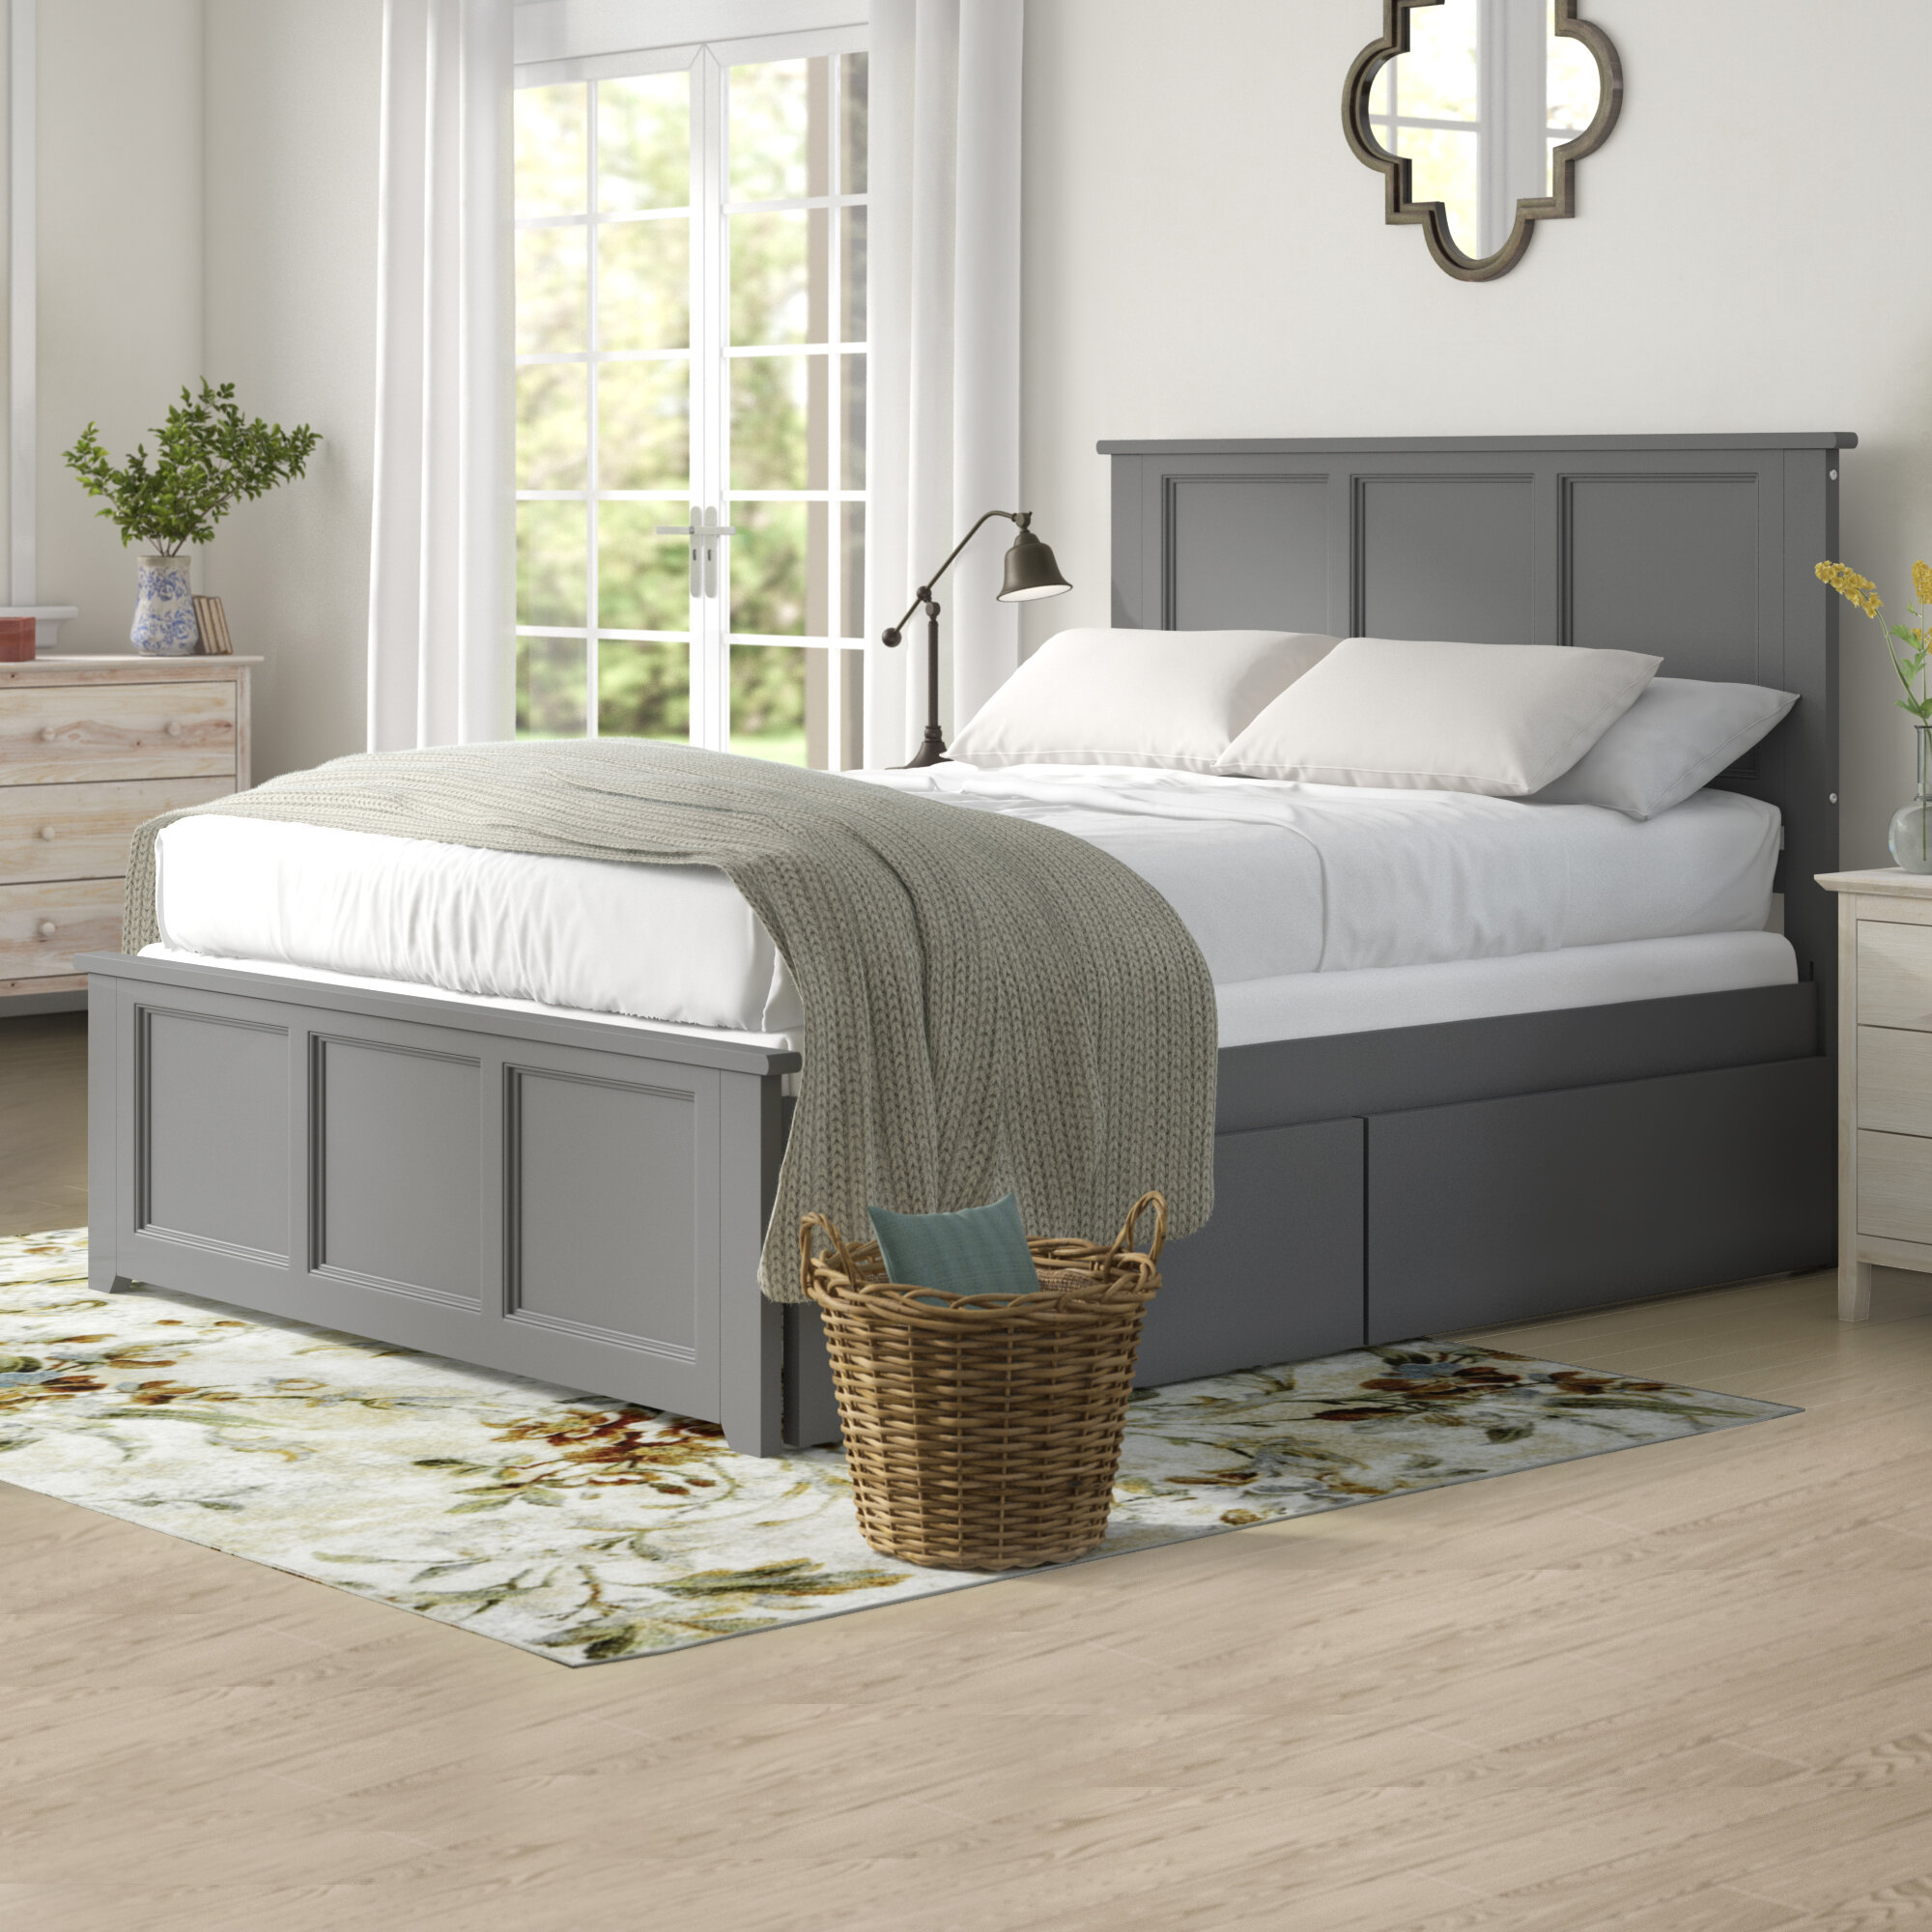 Picture of: Queen Size Wood Storage Beds You Ll Love In 2020 Wayfair